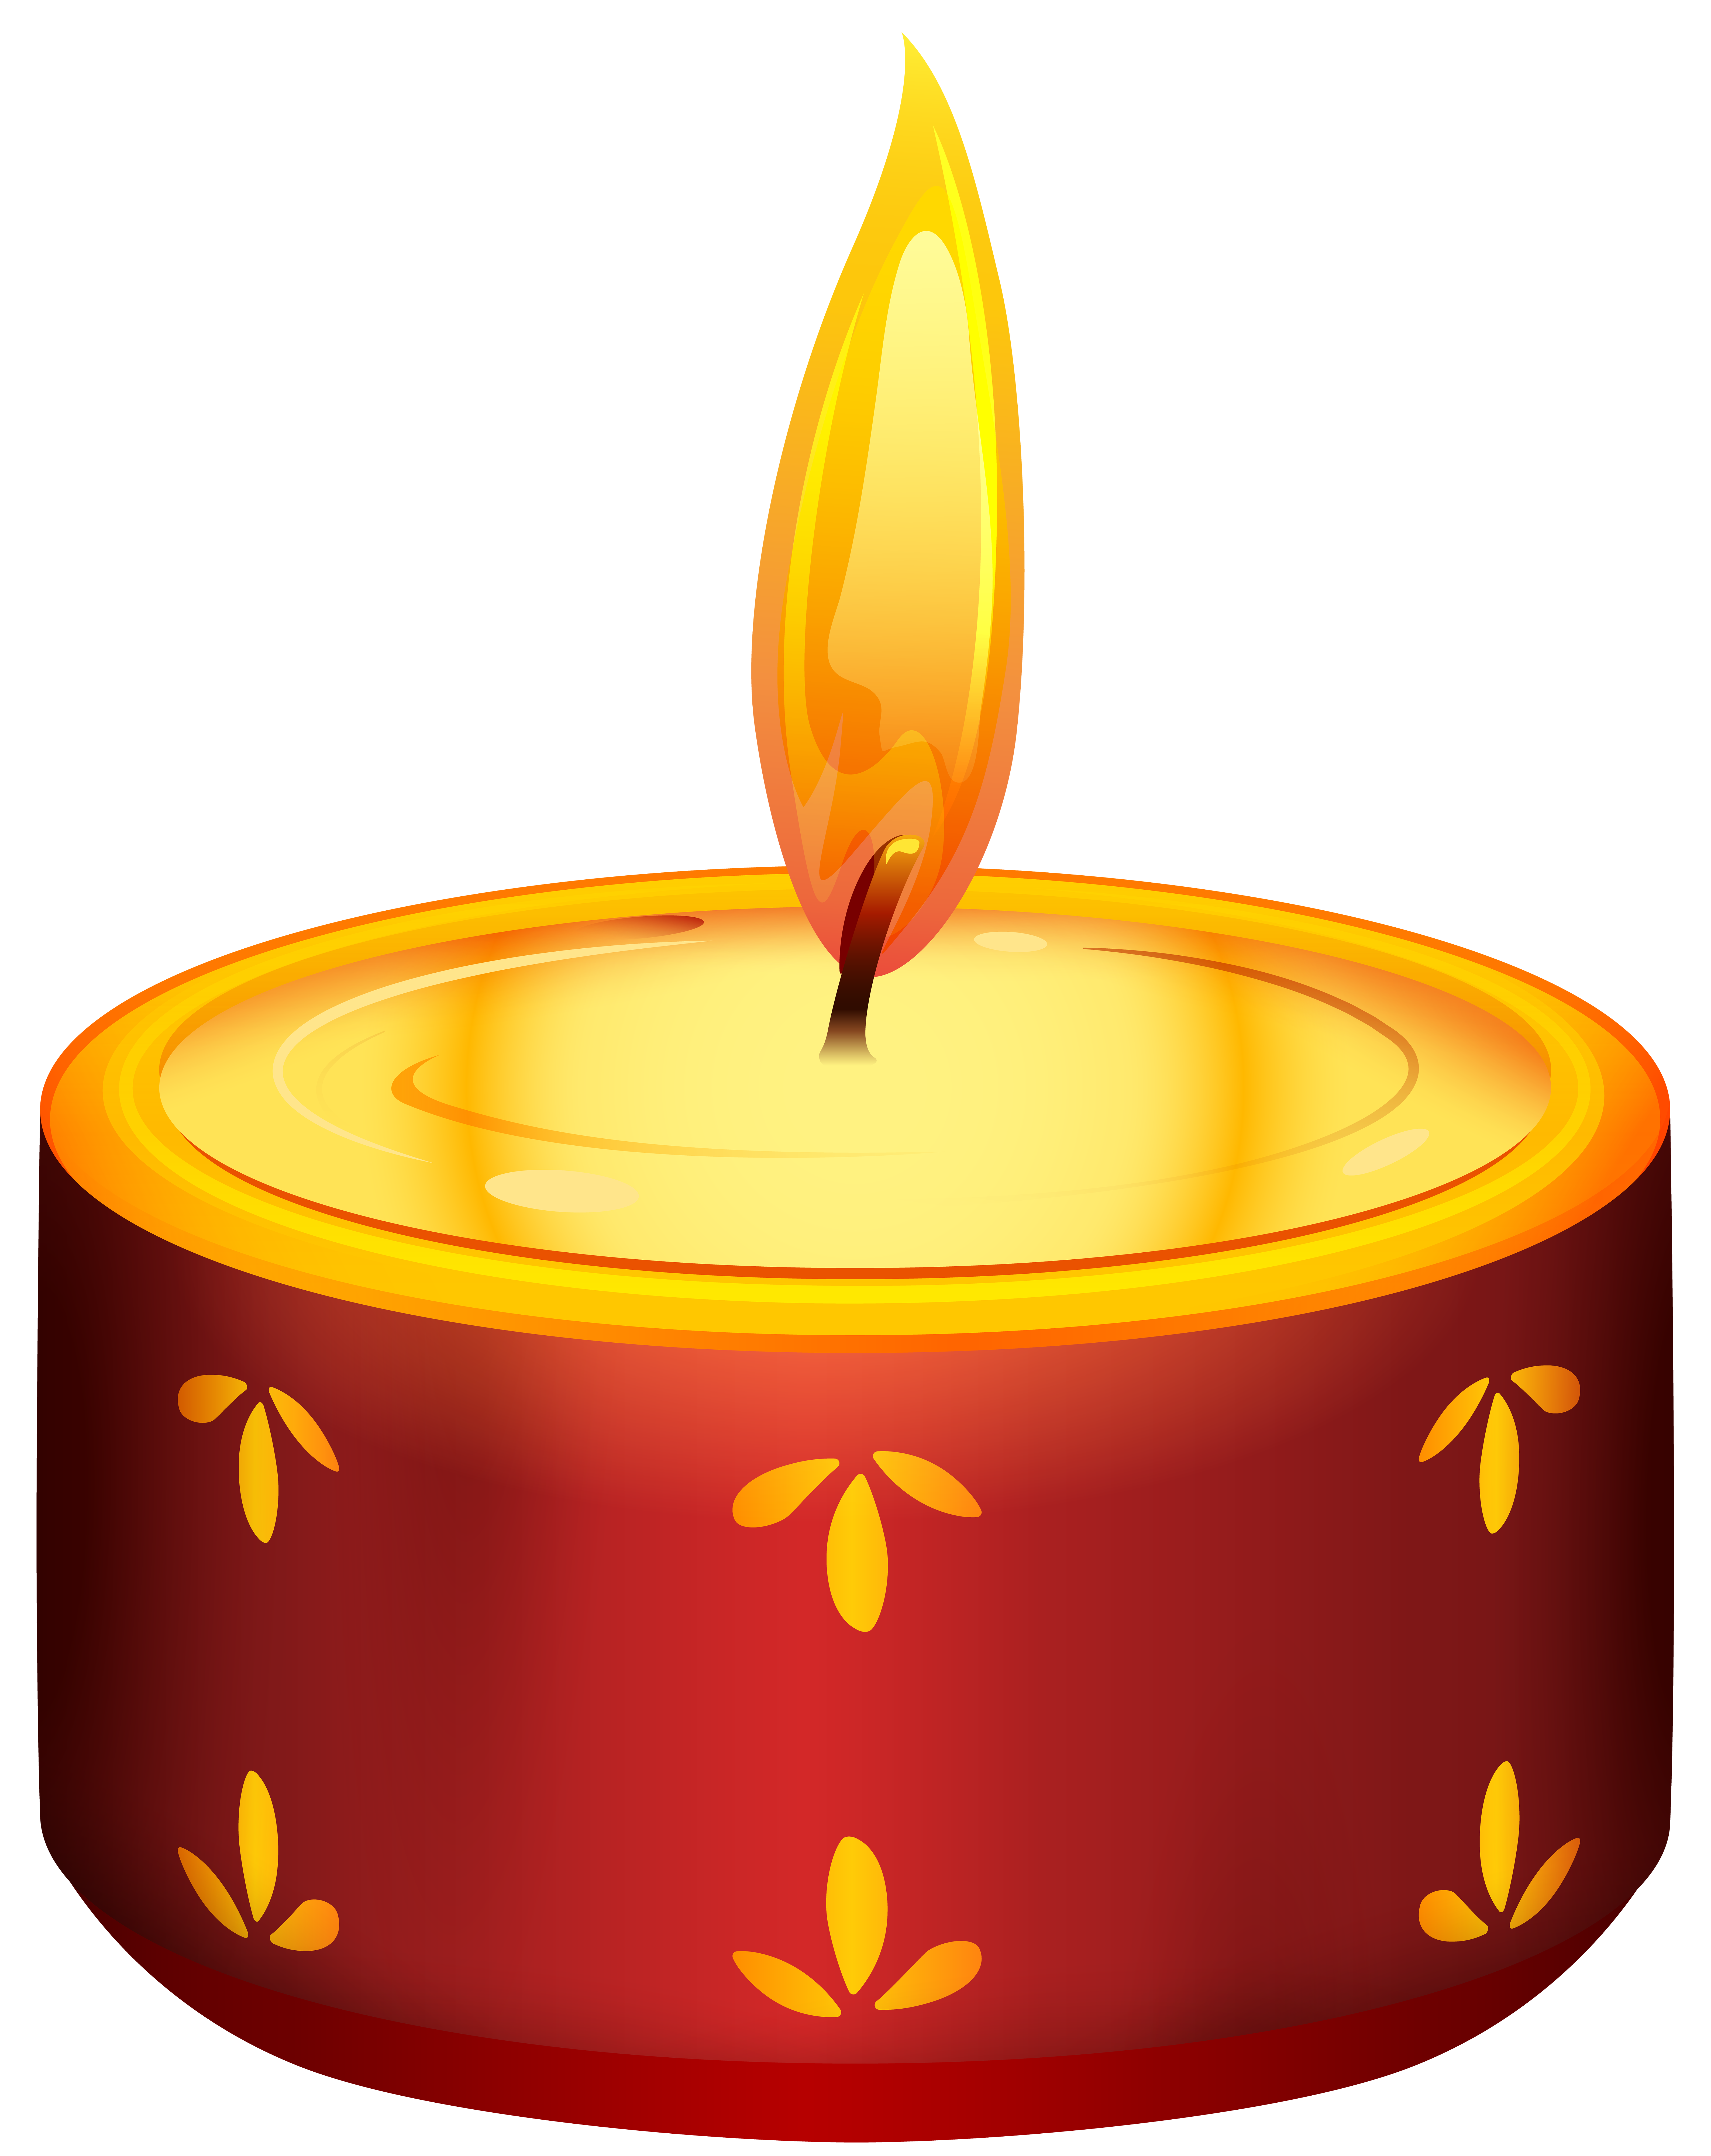 Green clipart diwali. Red candle transparent png